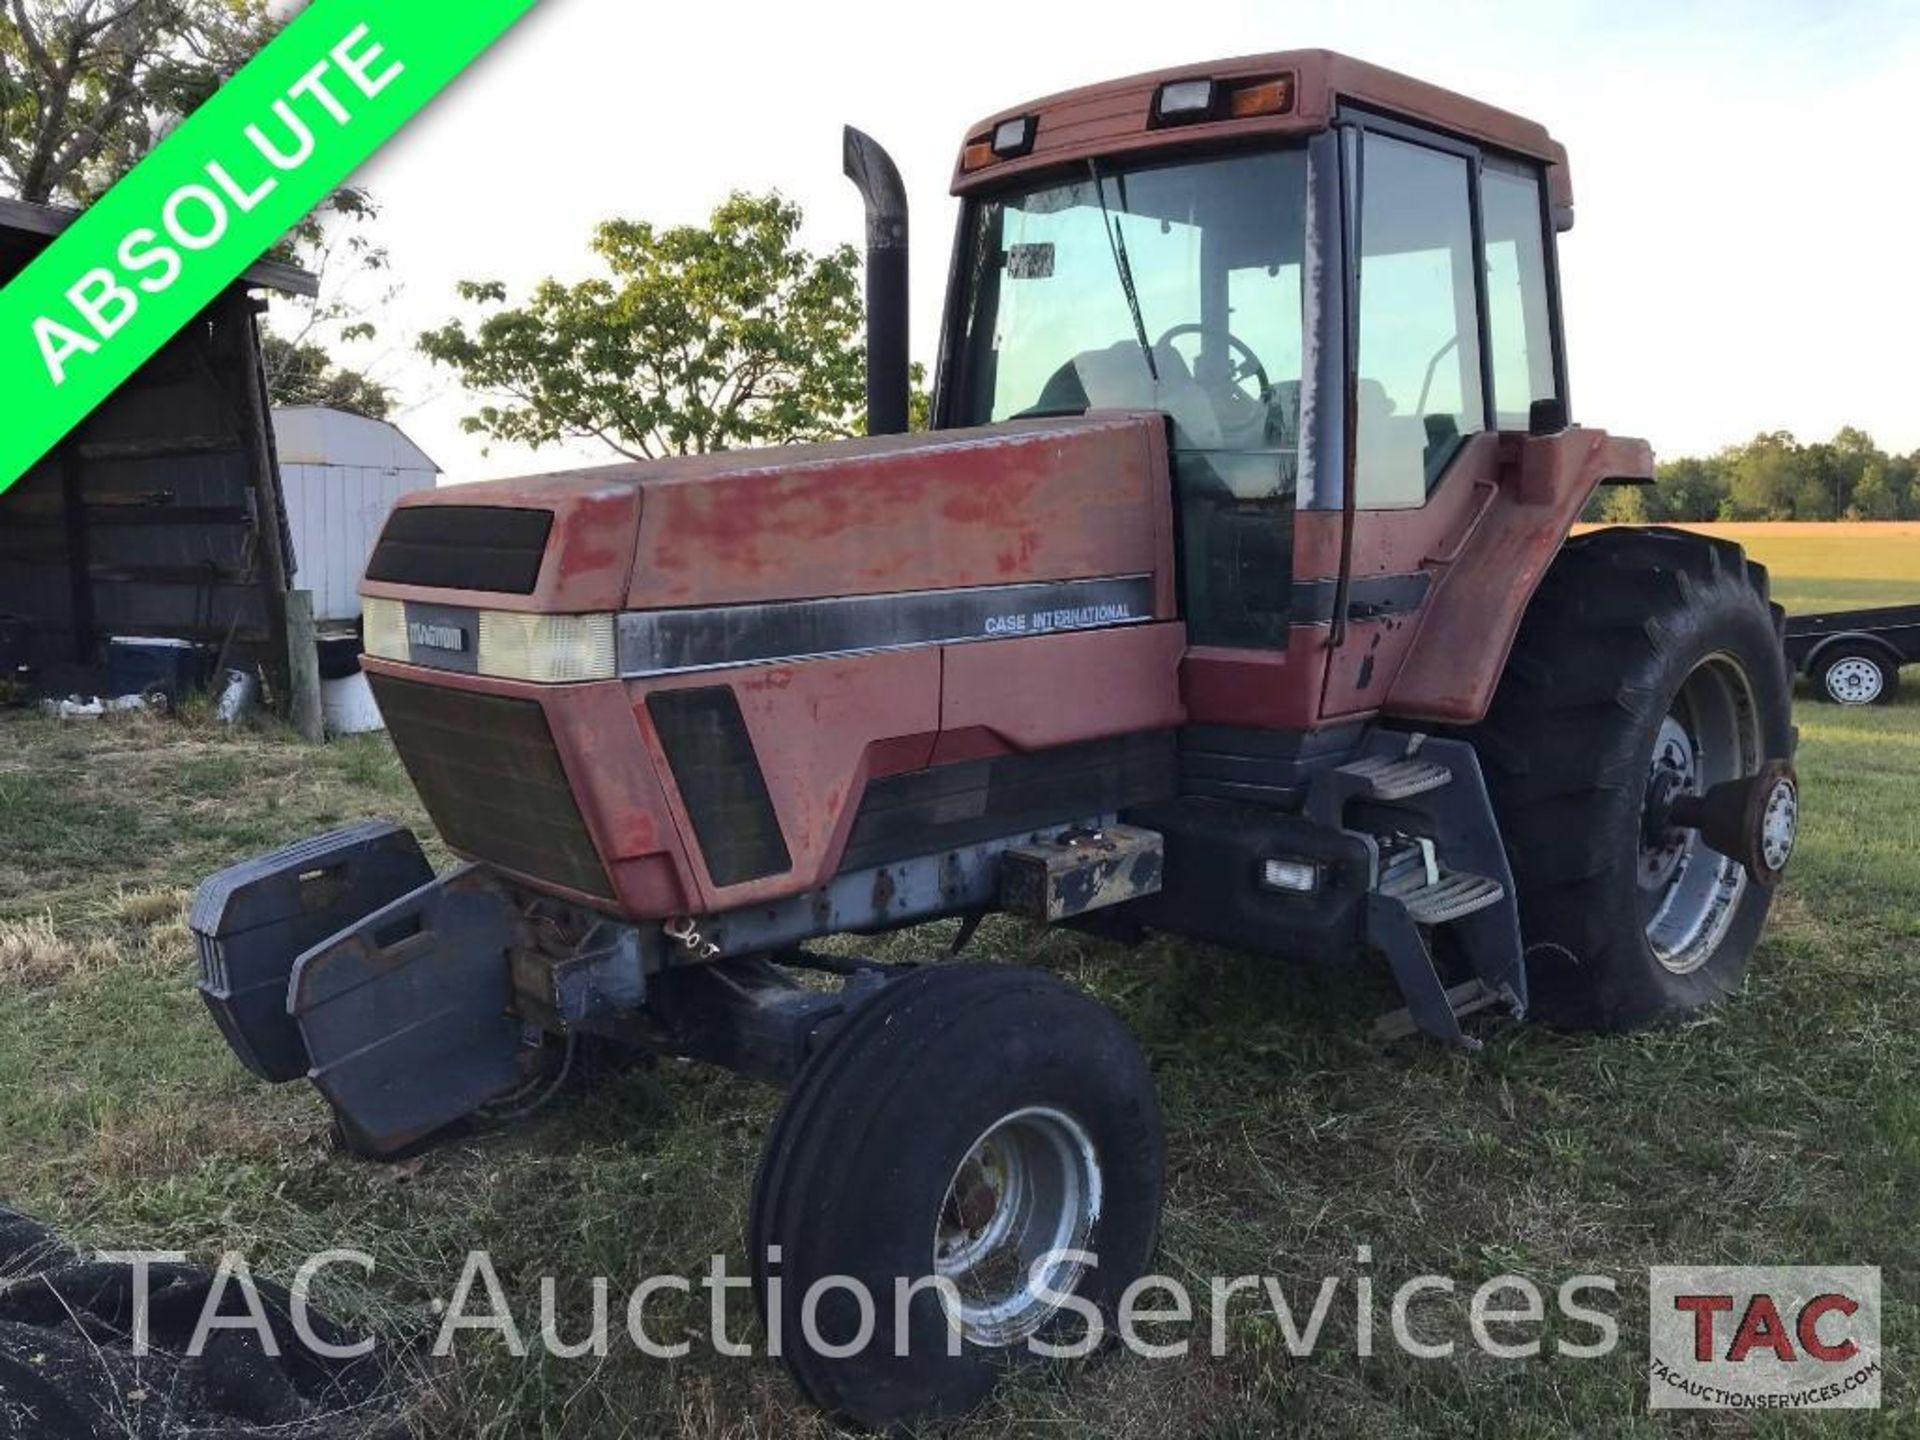 Case International 70 to 20 Magnum Farm Tractor